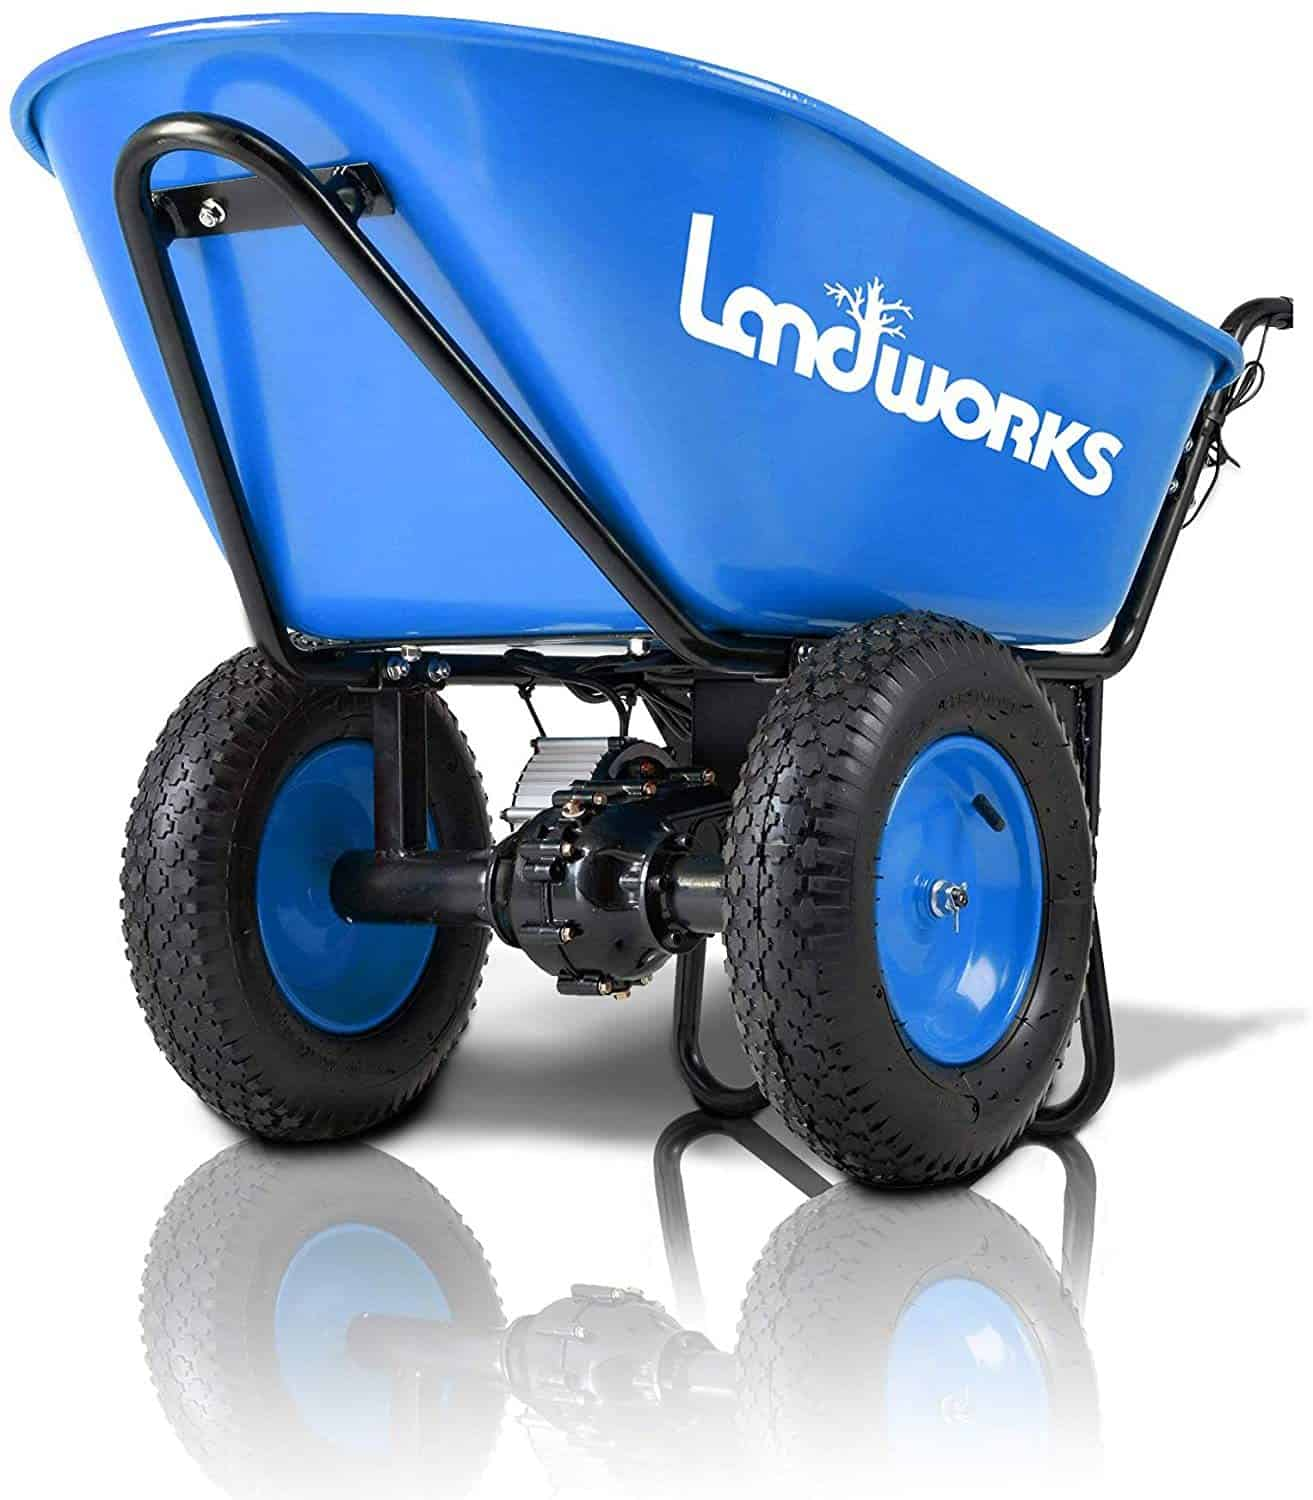 Landworks Electric Wheelbarrow